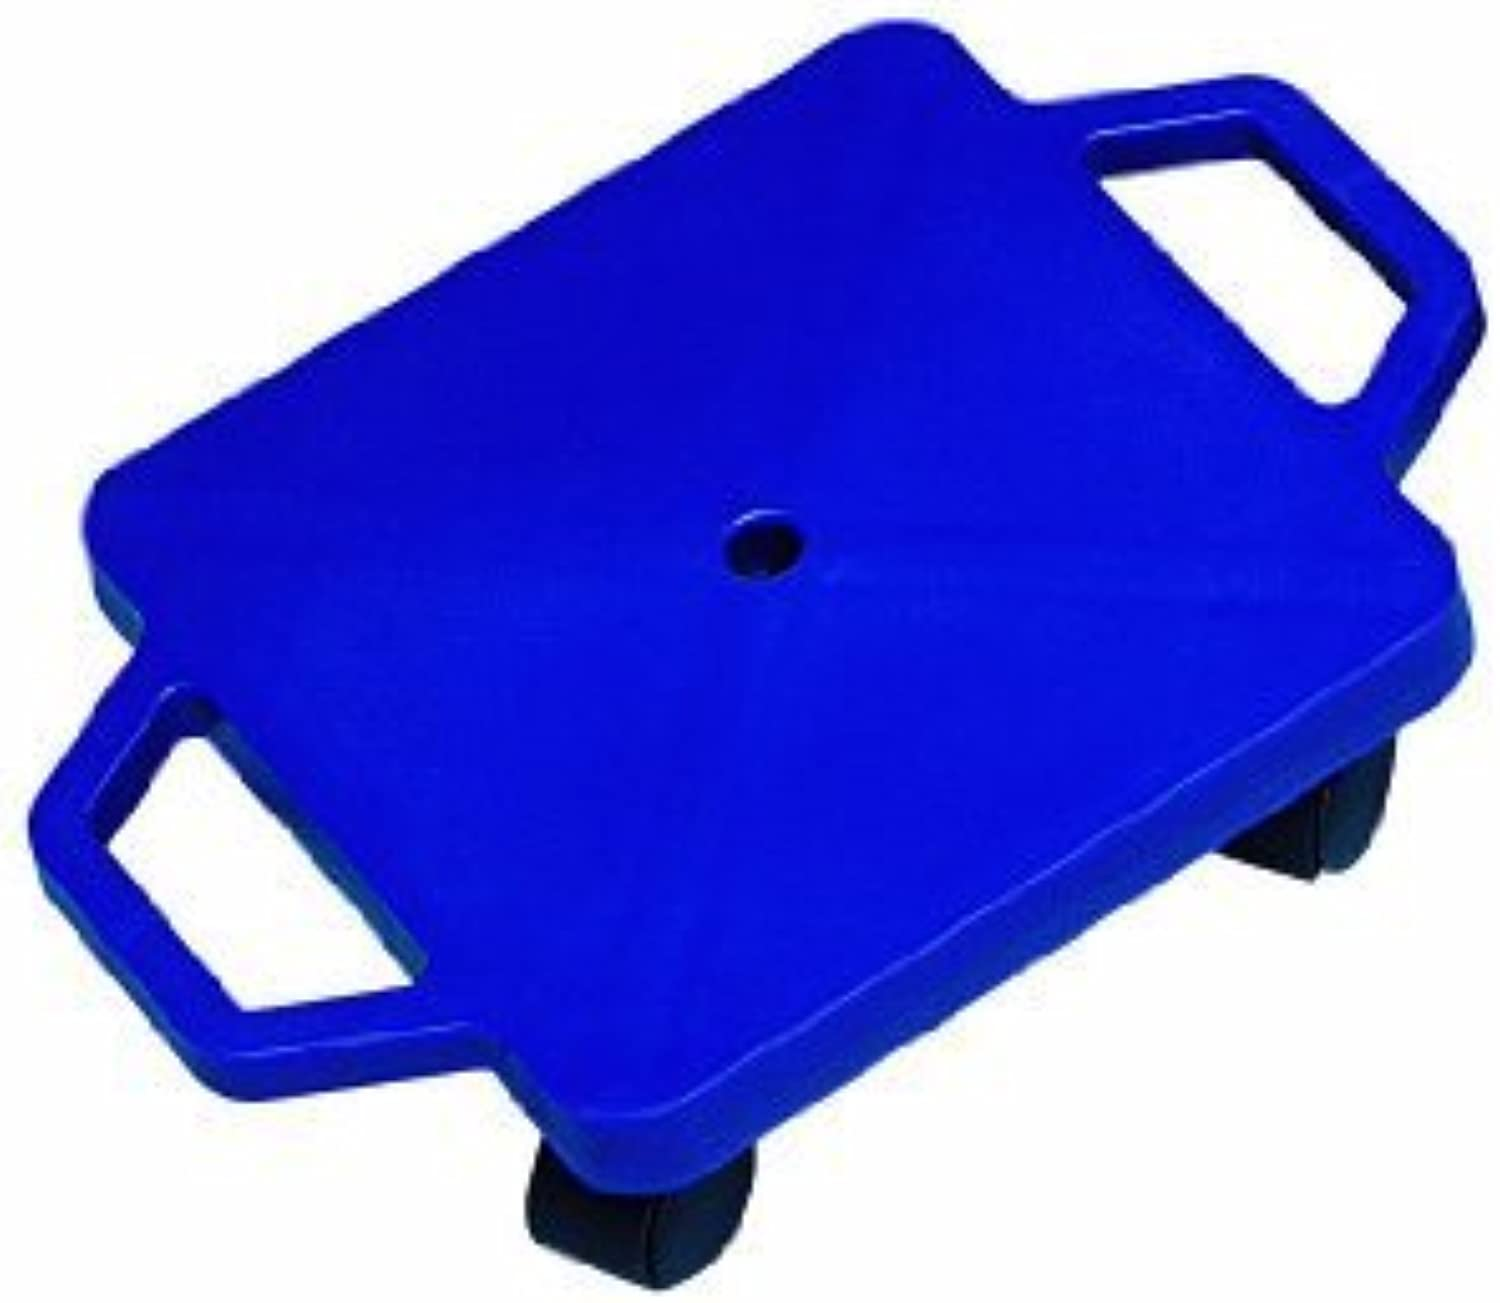 FlagHouse Plastic Safe Grip Scooter, Blau by FlagHouse